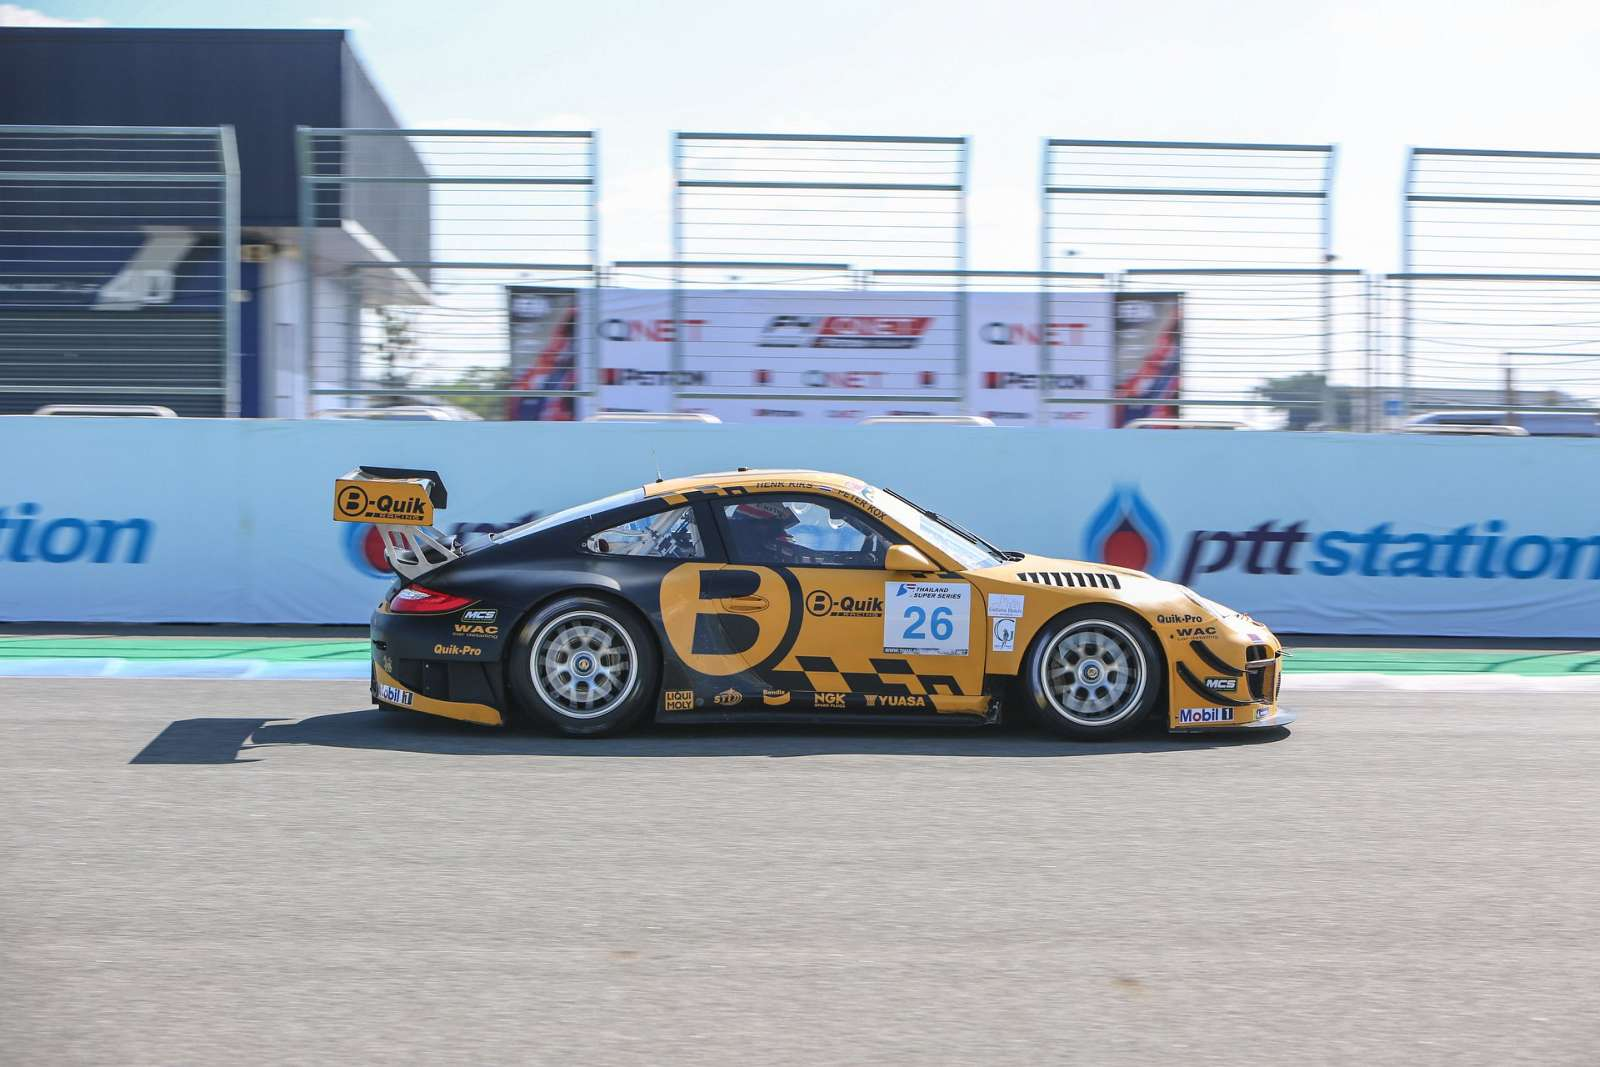 peter-kox-championship-winning-weekend-for-B-QUIK-in-buriram-11